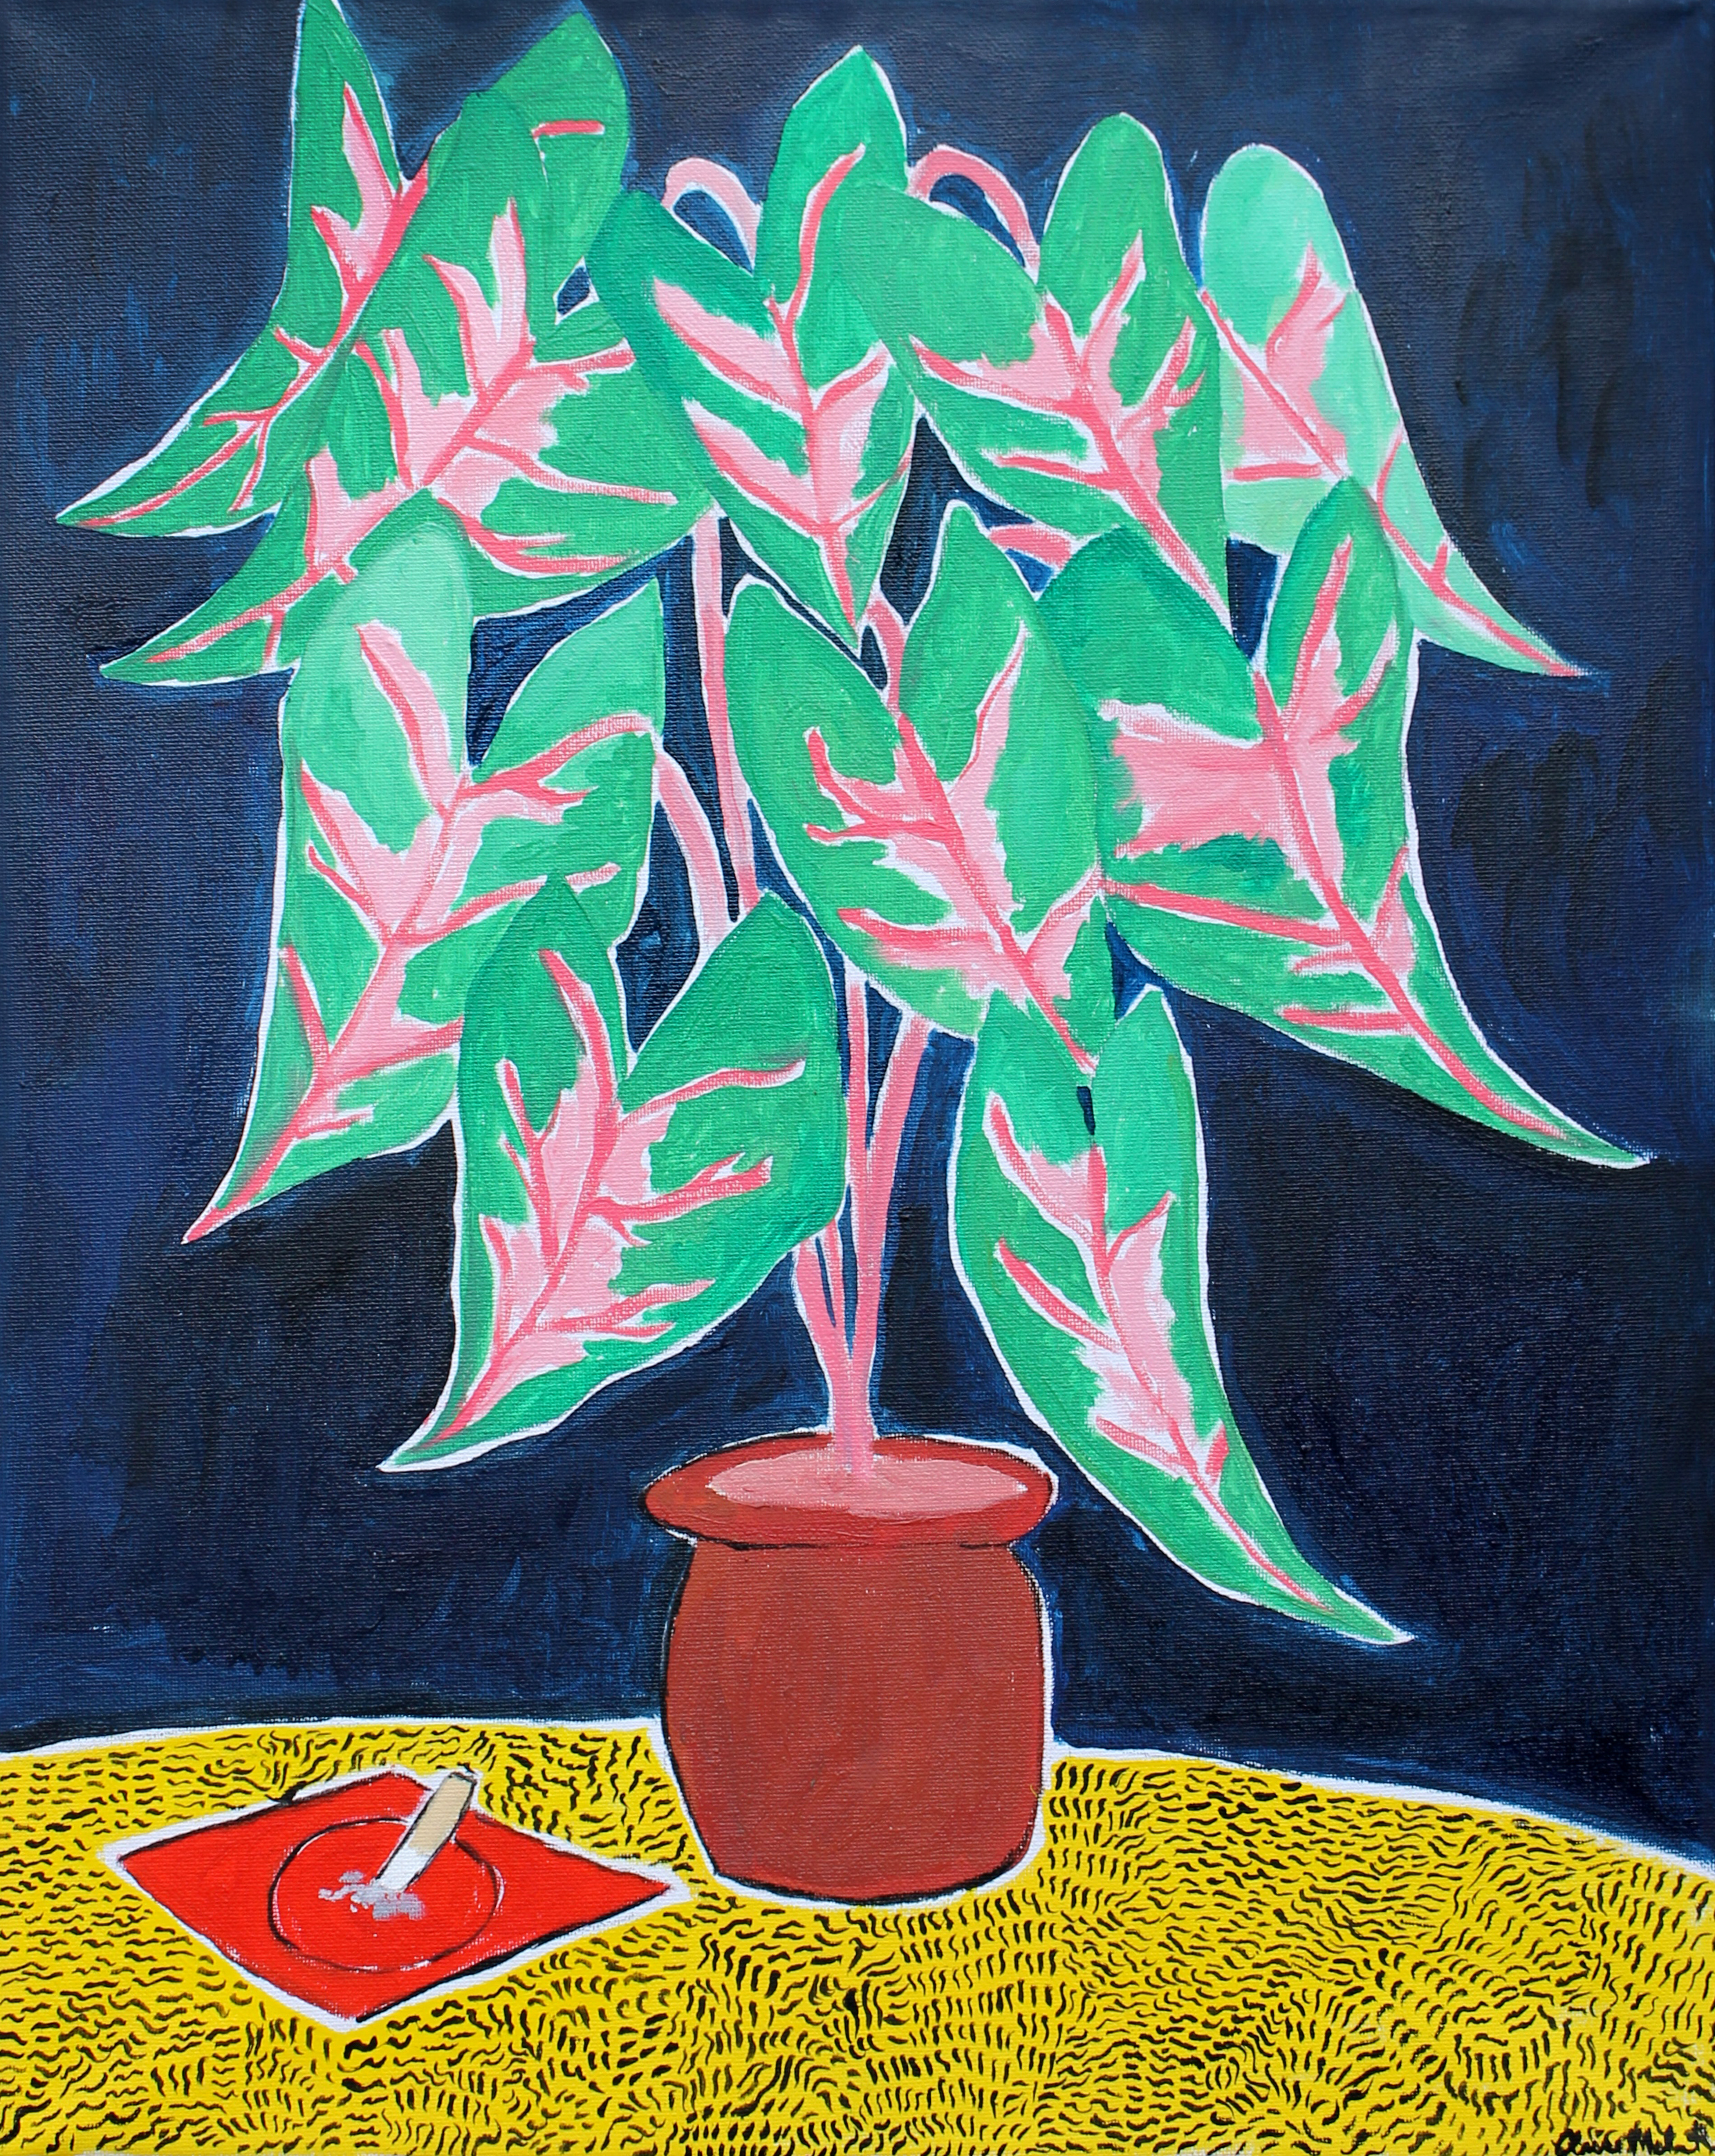 Claire Milbrath, Poor Gray's Apartment (Plant), 2016. Oil on canvas, 20 x 16 inches